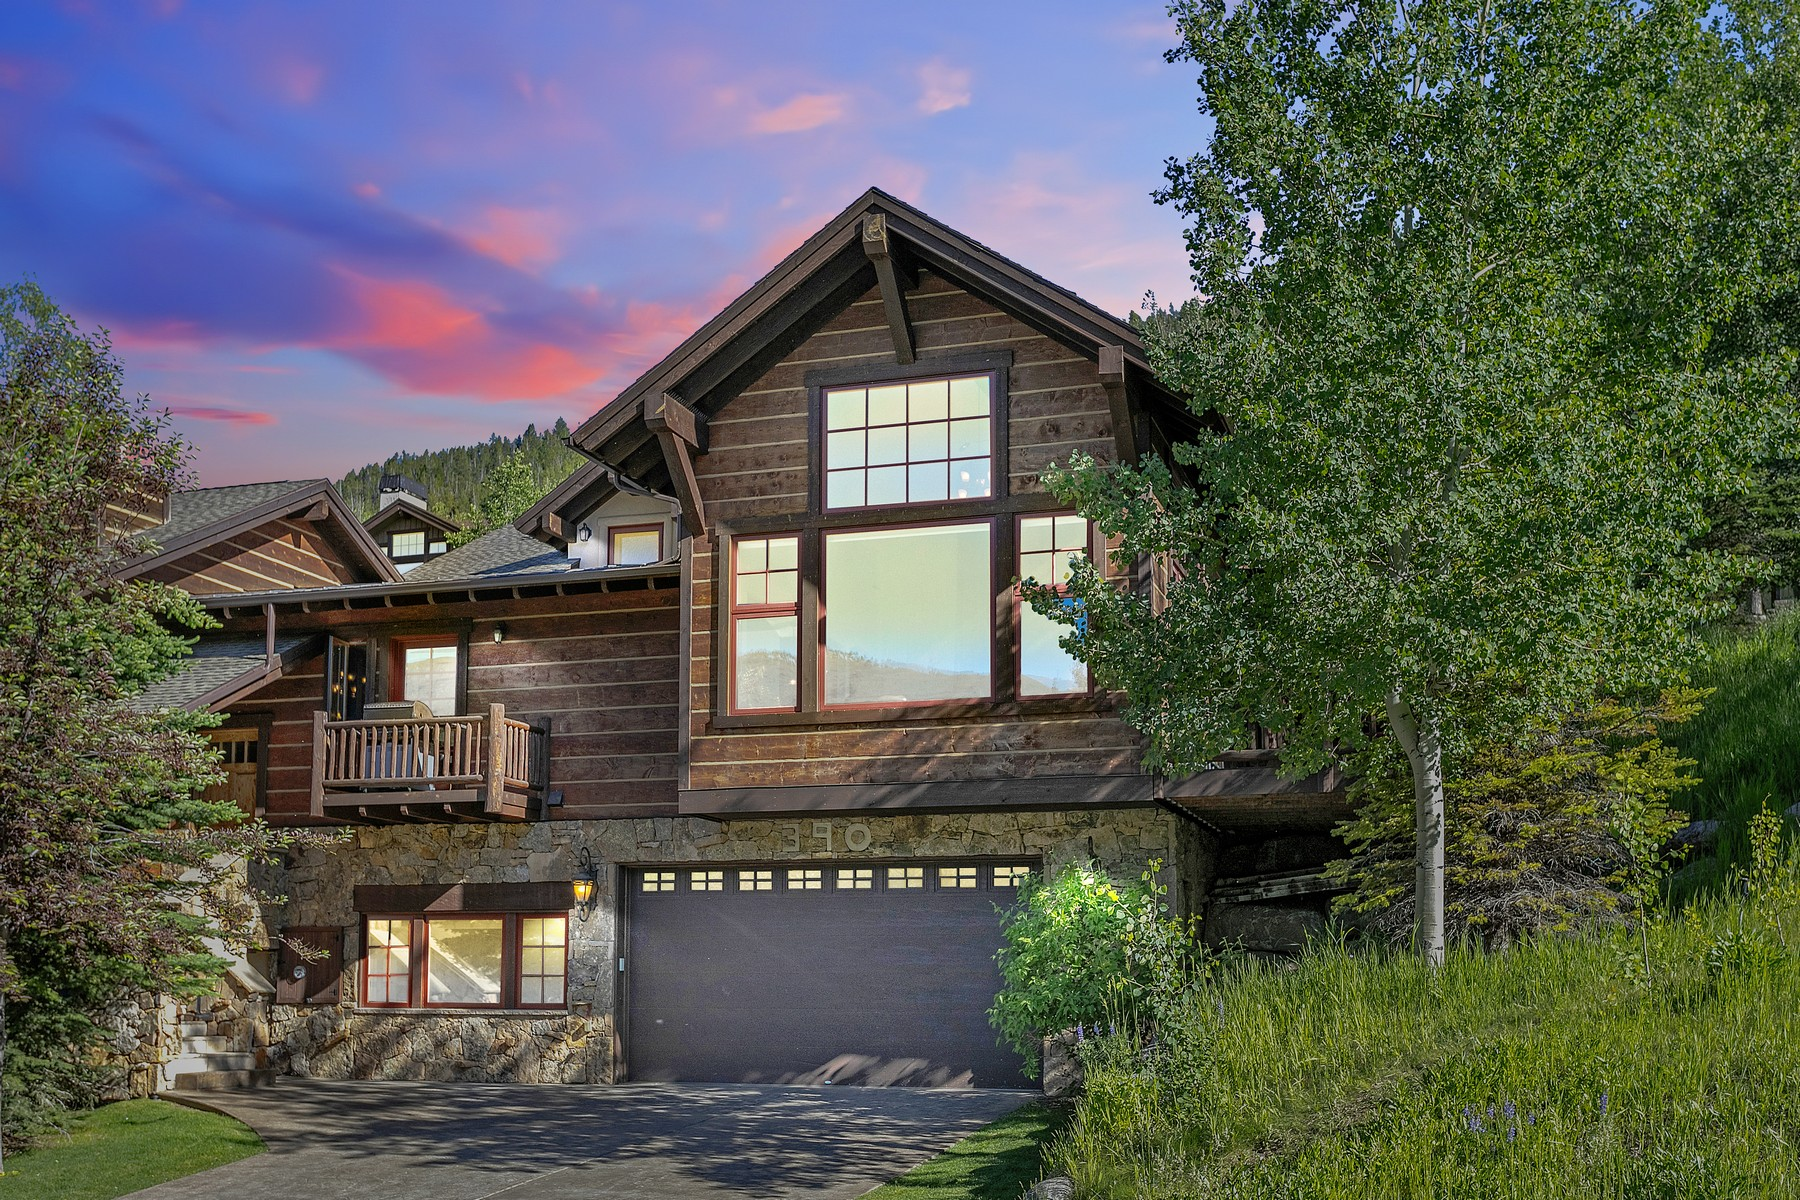 Duplex Homes for Sale at The perfect getaway starts with the perfect home 390 Eagle Drive Avon, Colorado 81620 United States